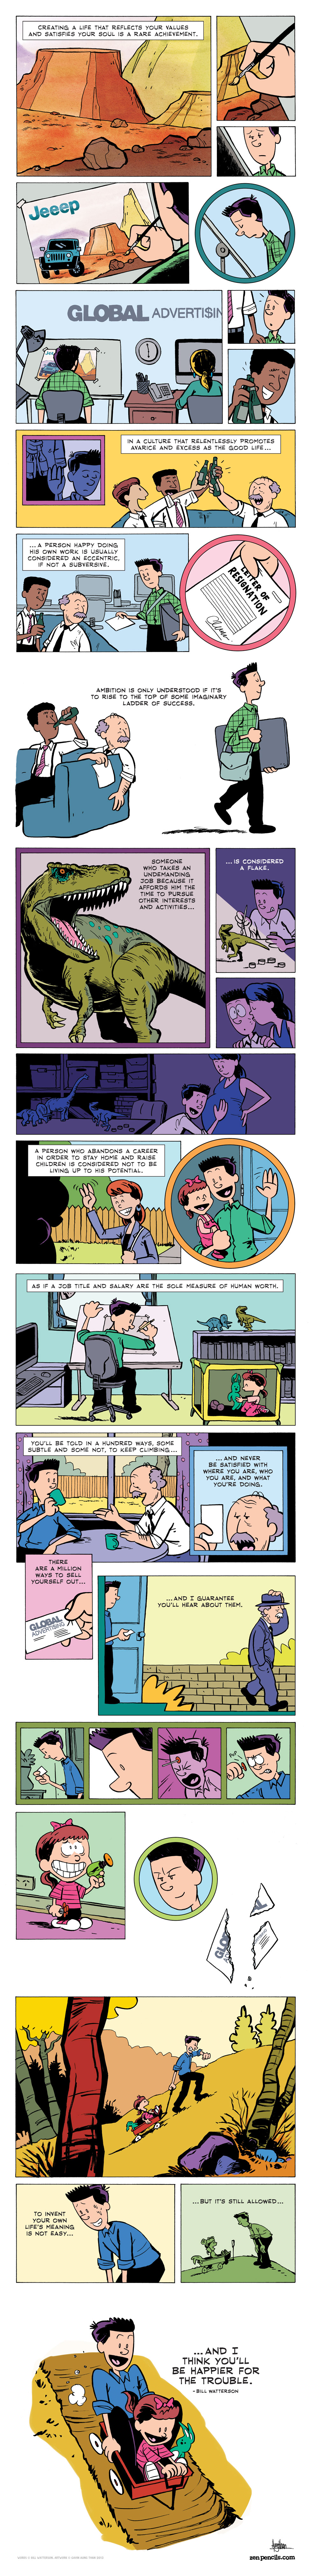 BILL WATTERSON - A cartoonist's advice